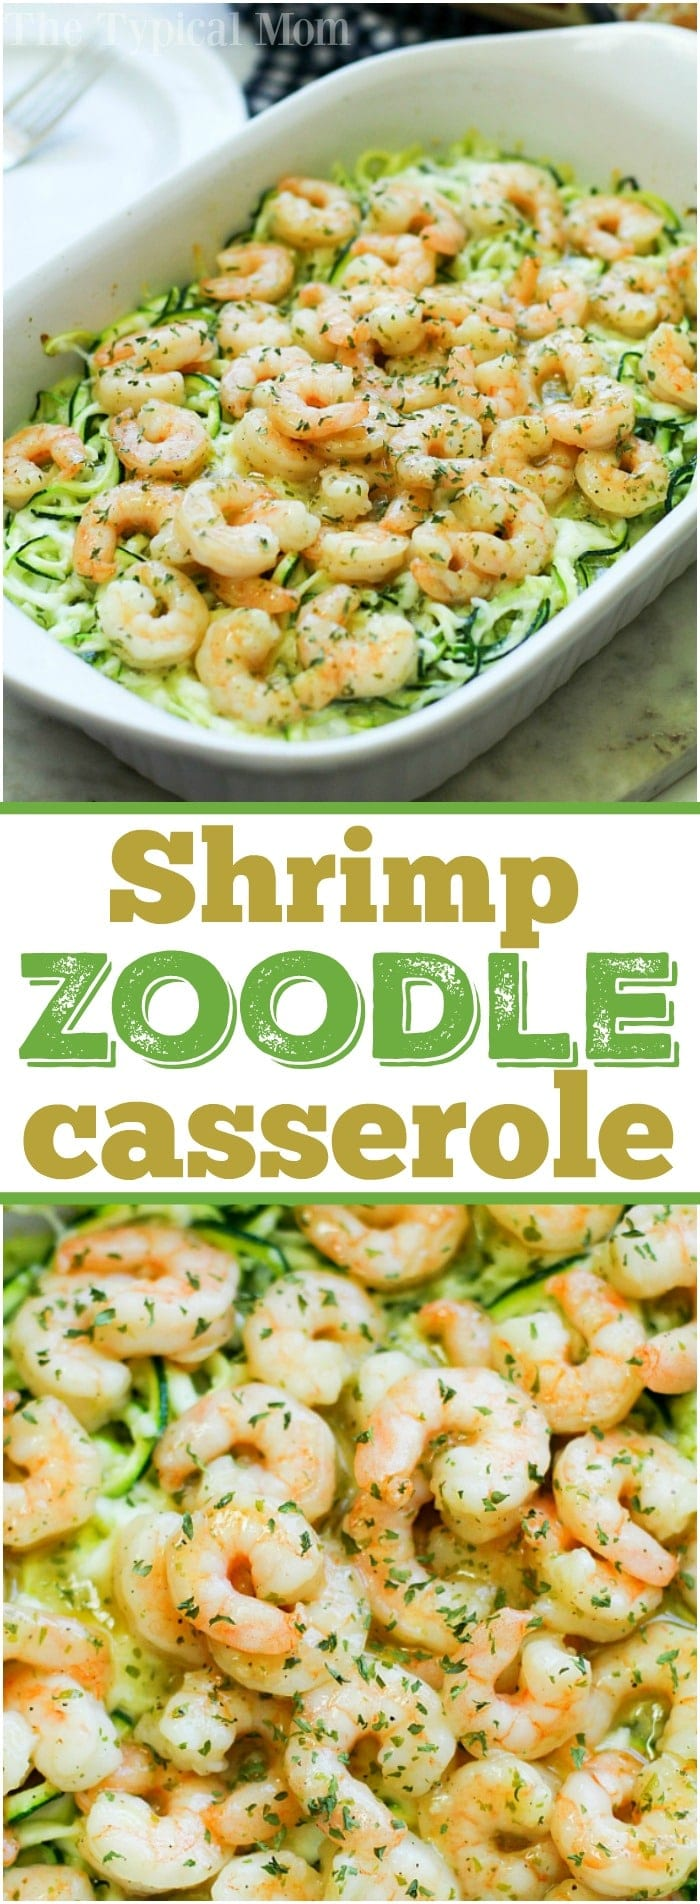 This is how you make zucchini noodles and shrimp casserole! This simple seafood dinner idea is a favorite at our house substituting vegetable noodles instead of traditional pasta. If you've never made zucchini zoodles before you are in for a real treat. Buttery and cheesy you'll love this family meal. AD #seafood #shrimp #zoodle #casserole #vegetable #zoodles #zucchini #noodle